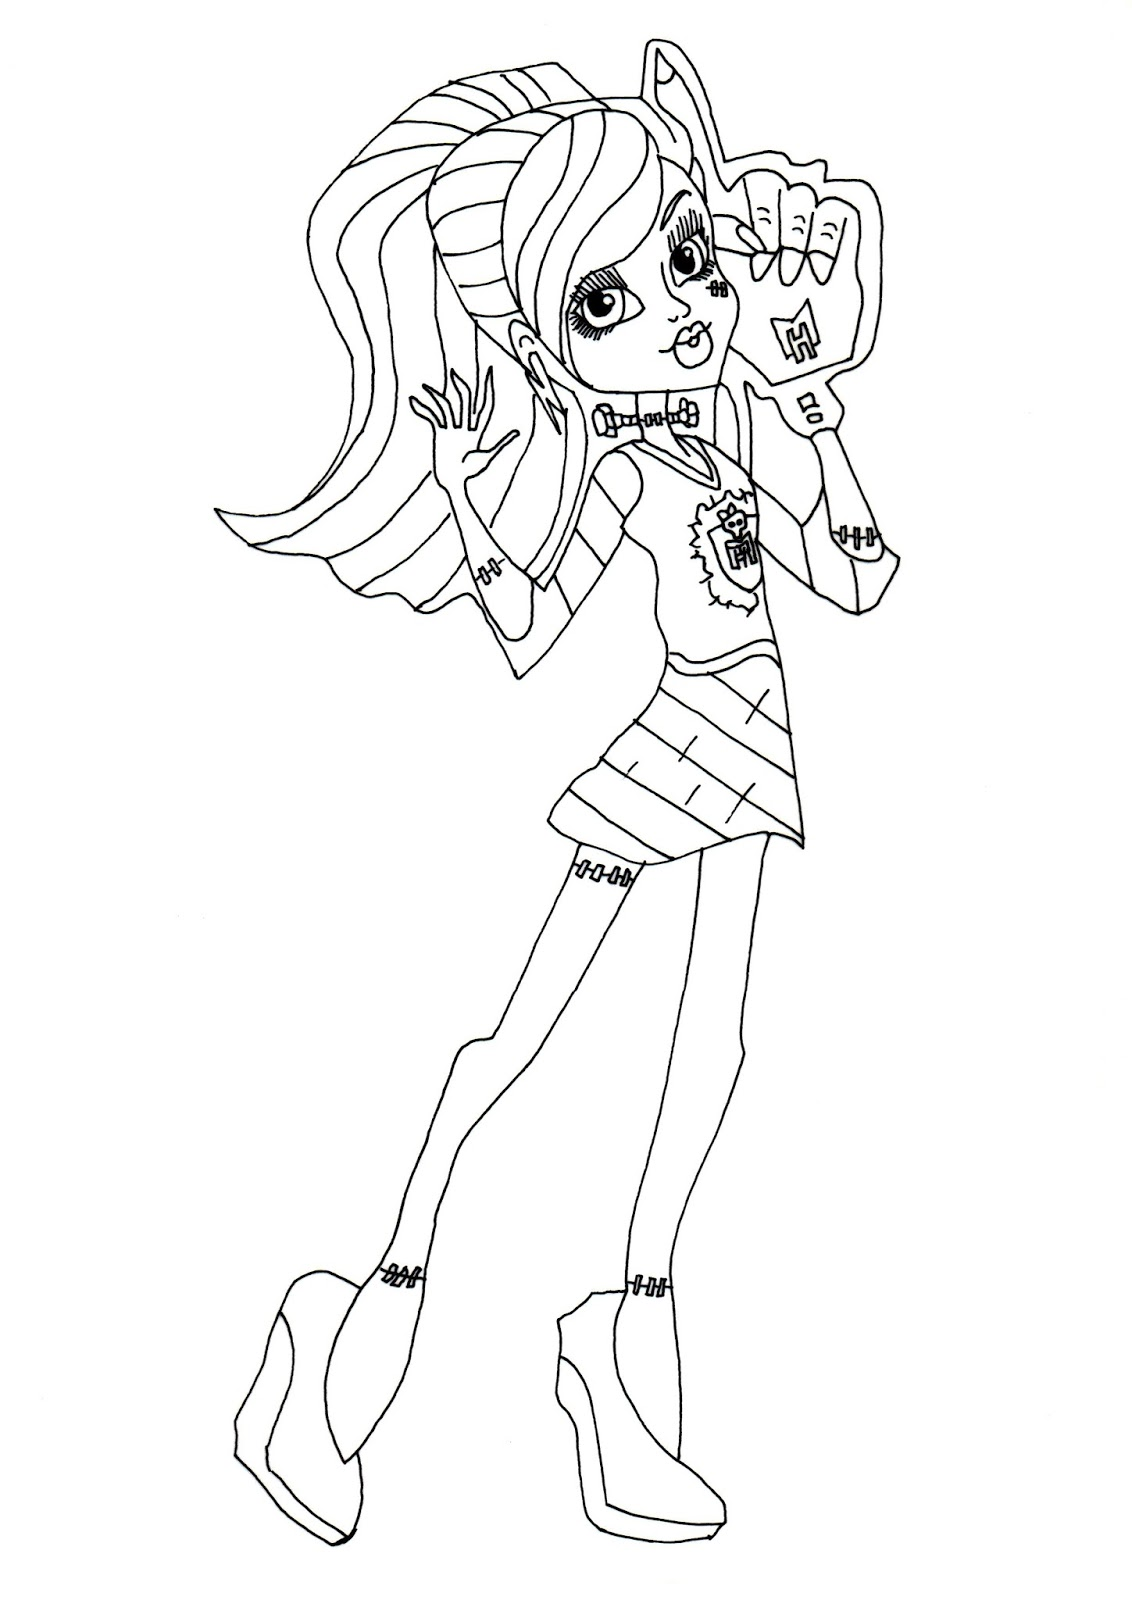 Großartig Frankie Stein Monster High Coloring Pages Galerie ...